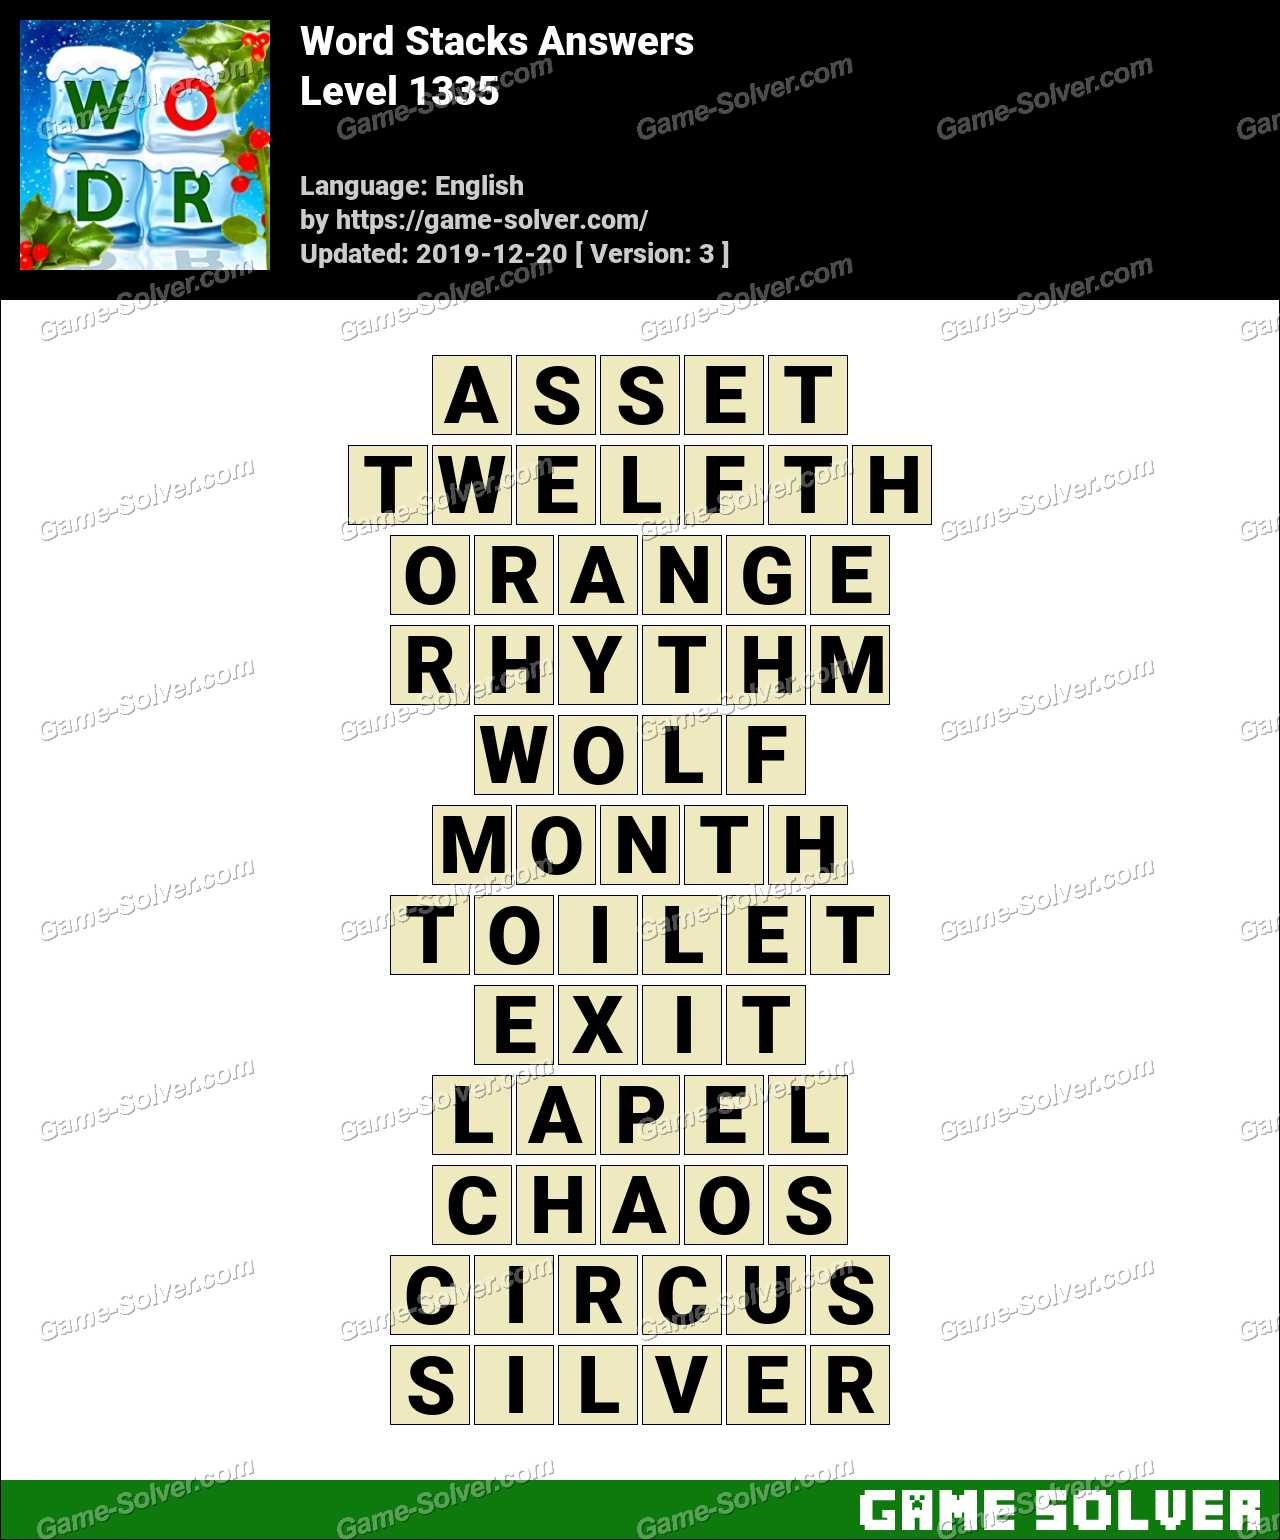 Word Stacks Level 1335 Answers